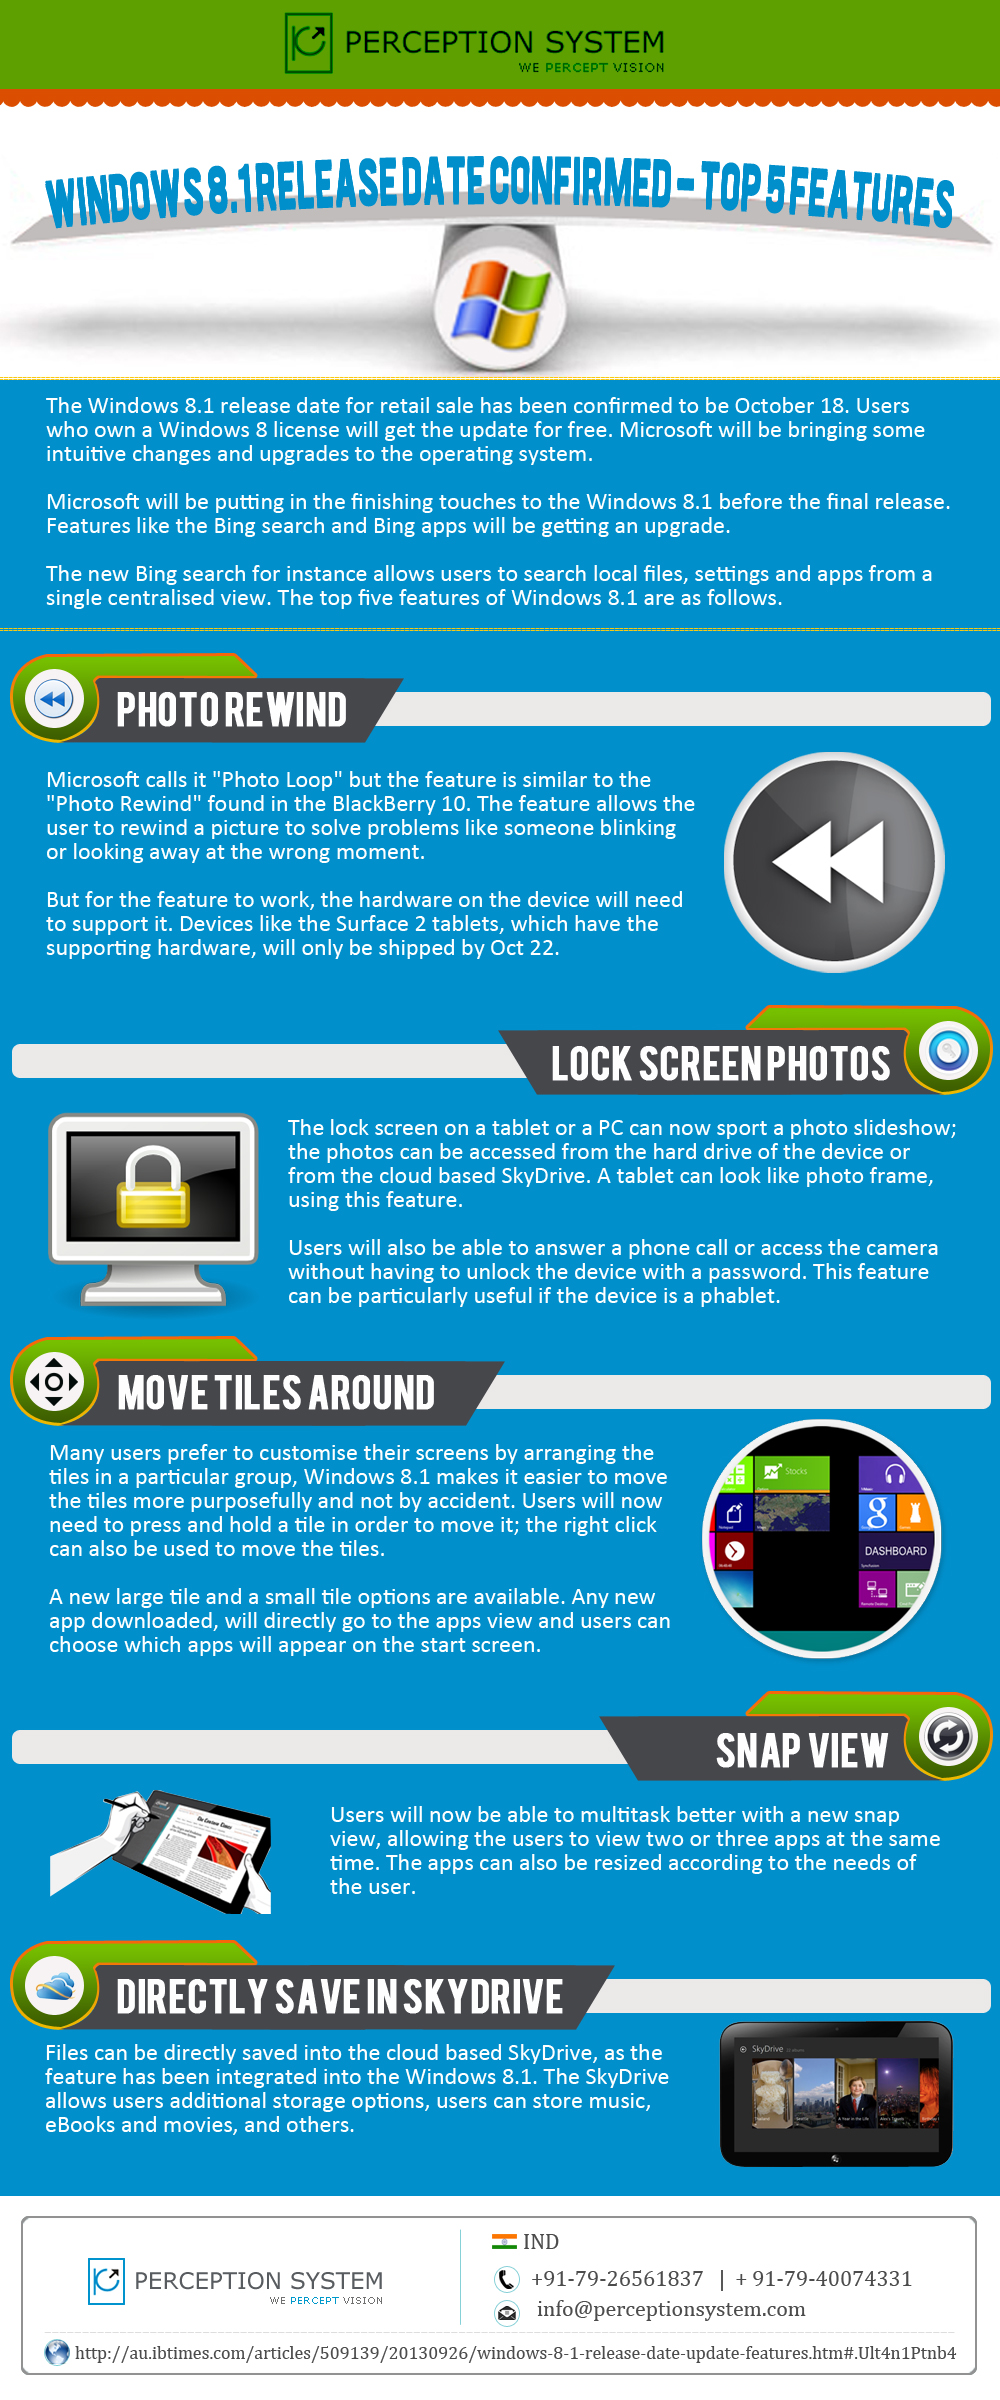 Windows Phone 8.1 Features (Infographic)